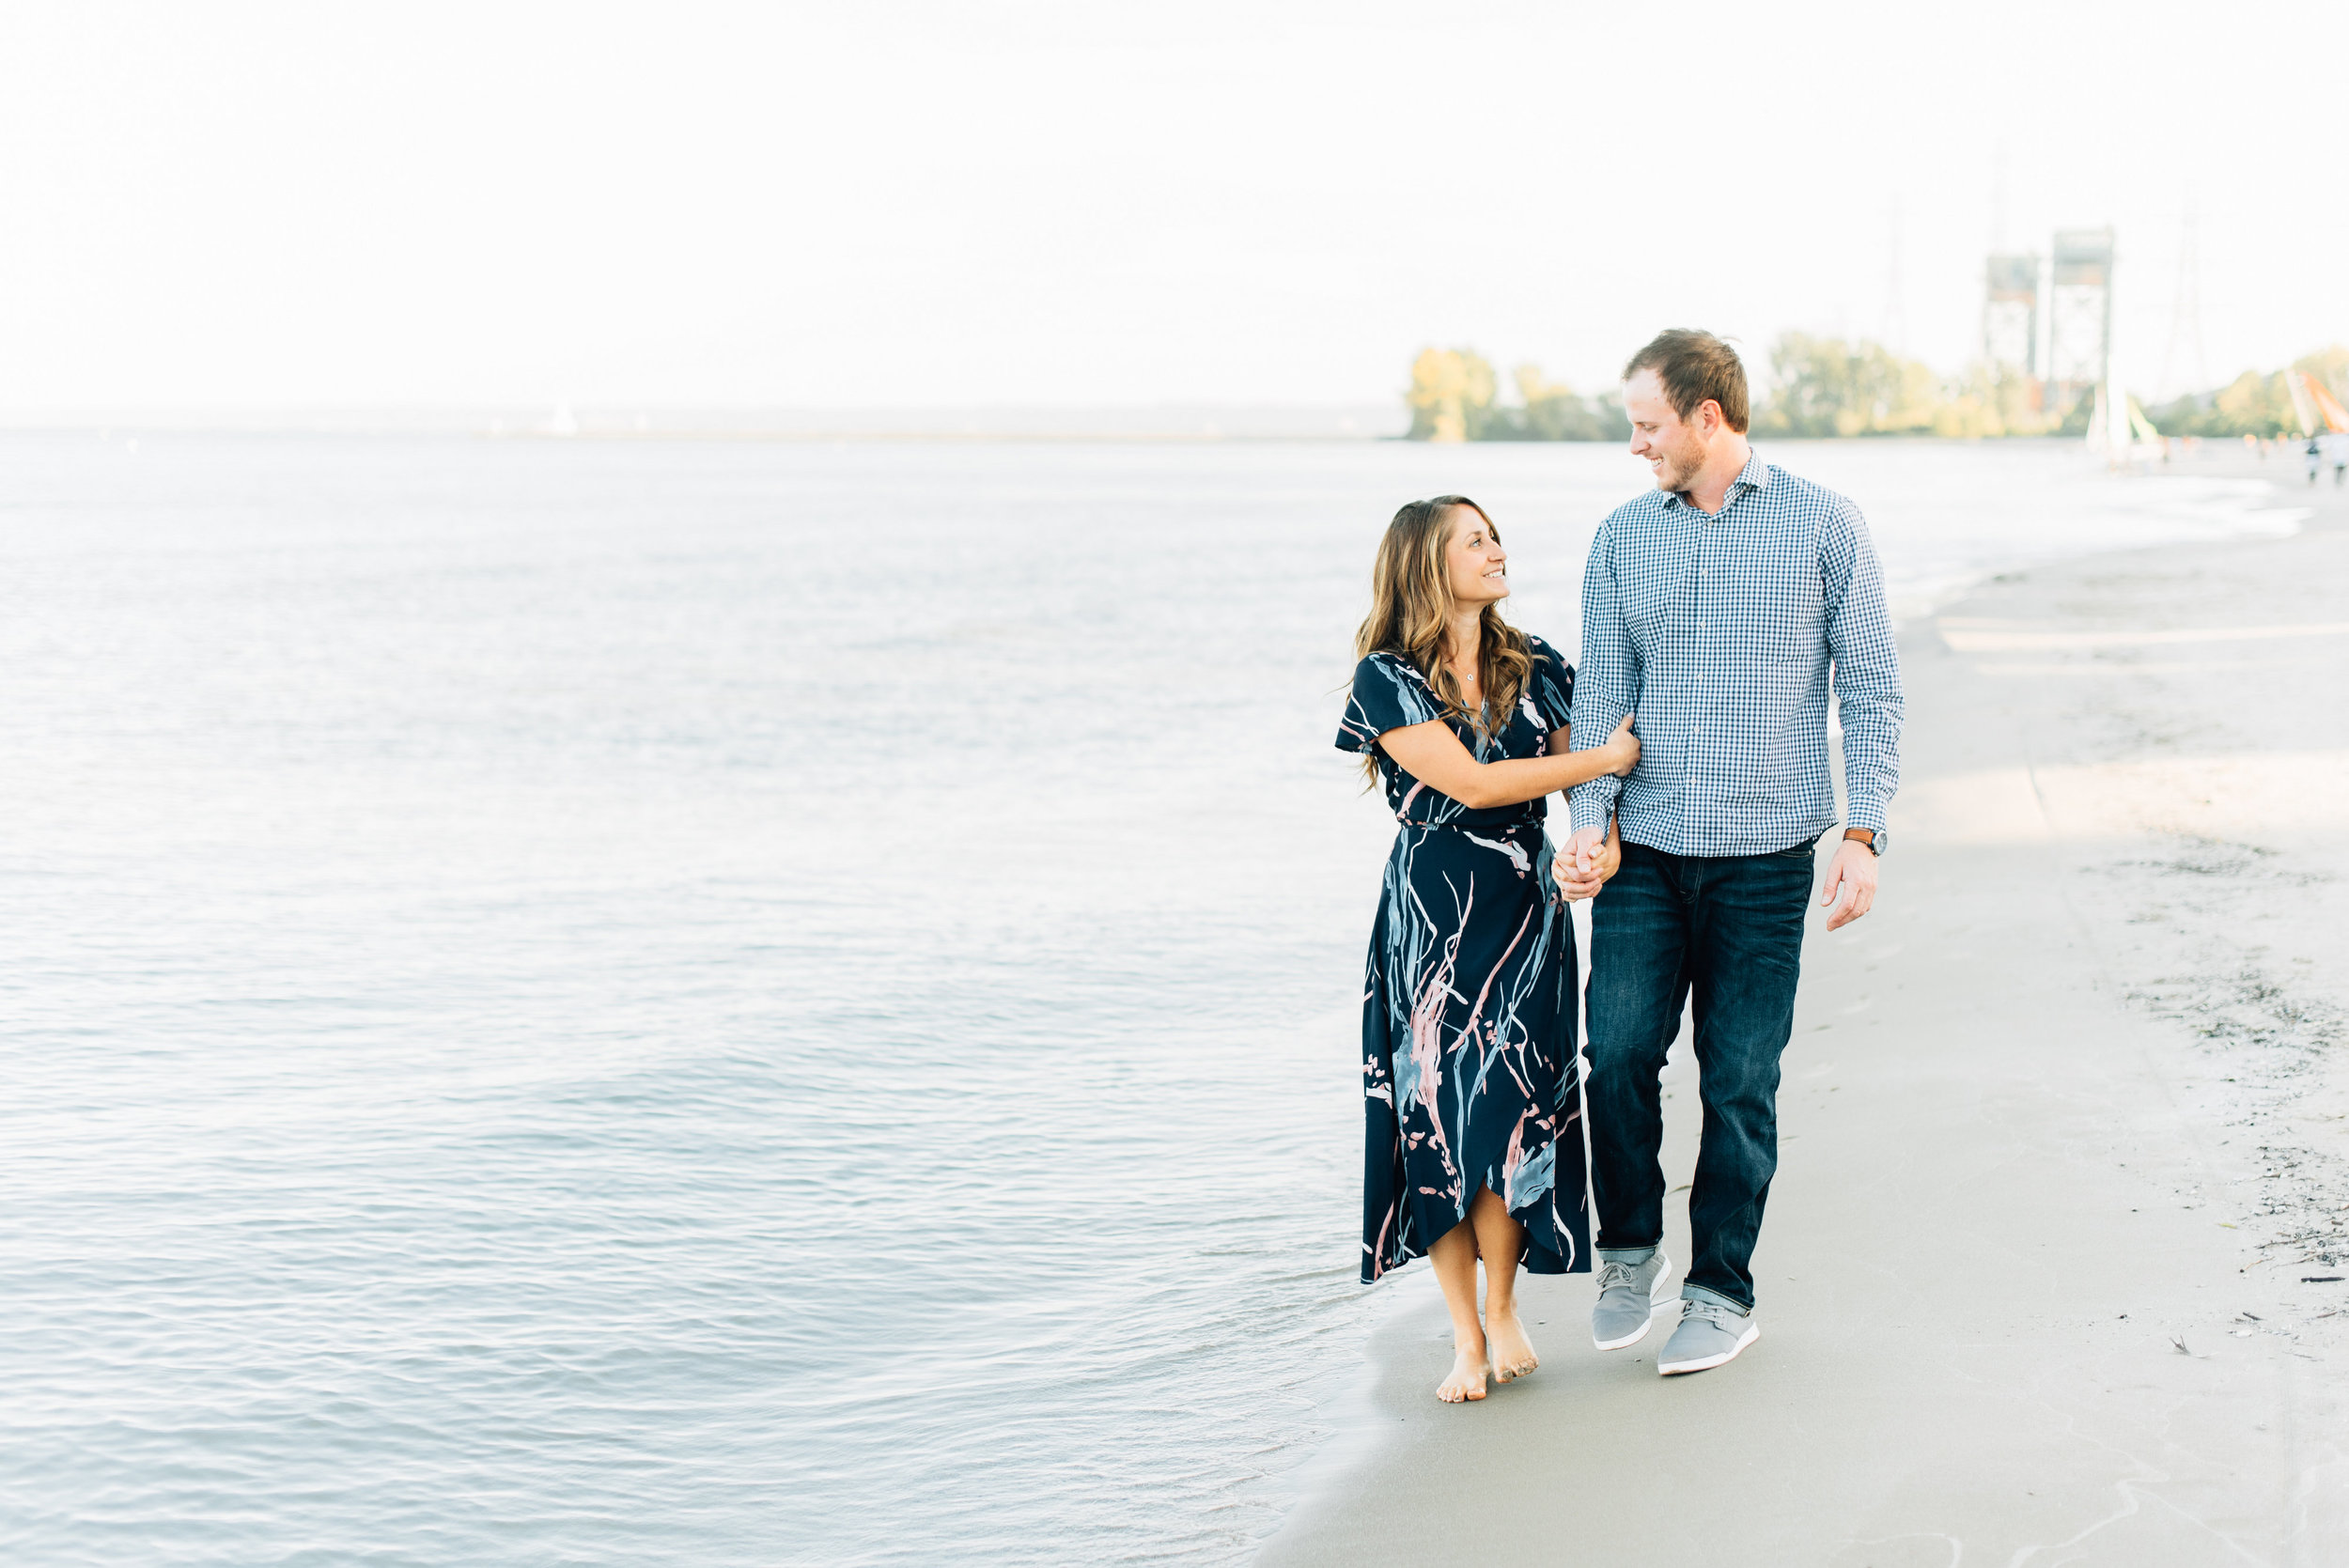 Real Bride: Amanda - A current LQ Events' bride who is deep into planning her June 2019 wedding spills on the planning process!Image by Kendra Ruth Photography